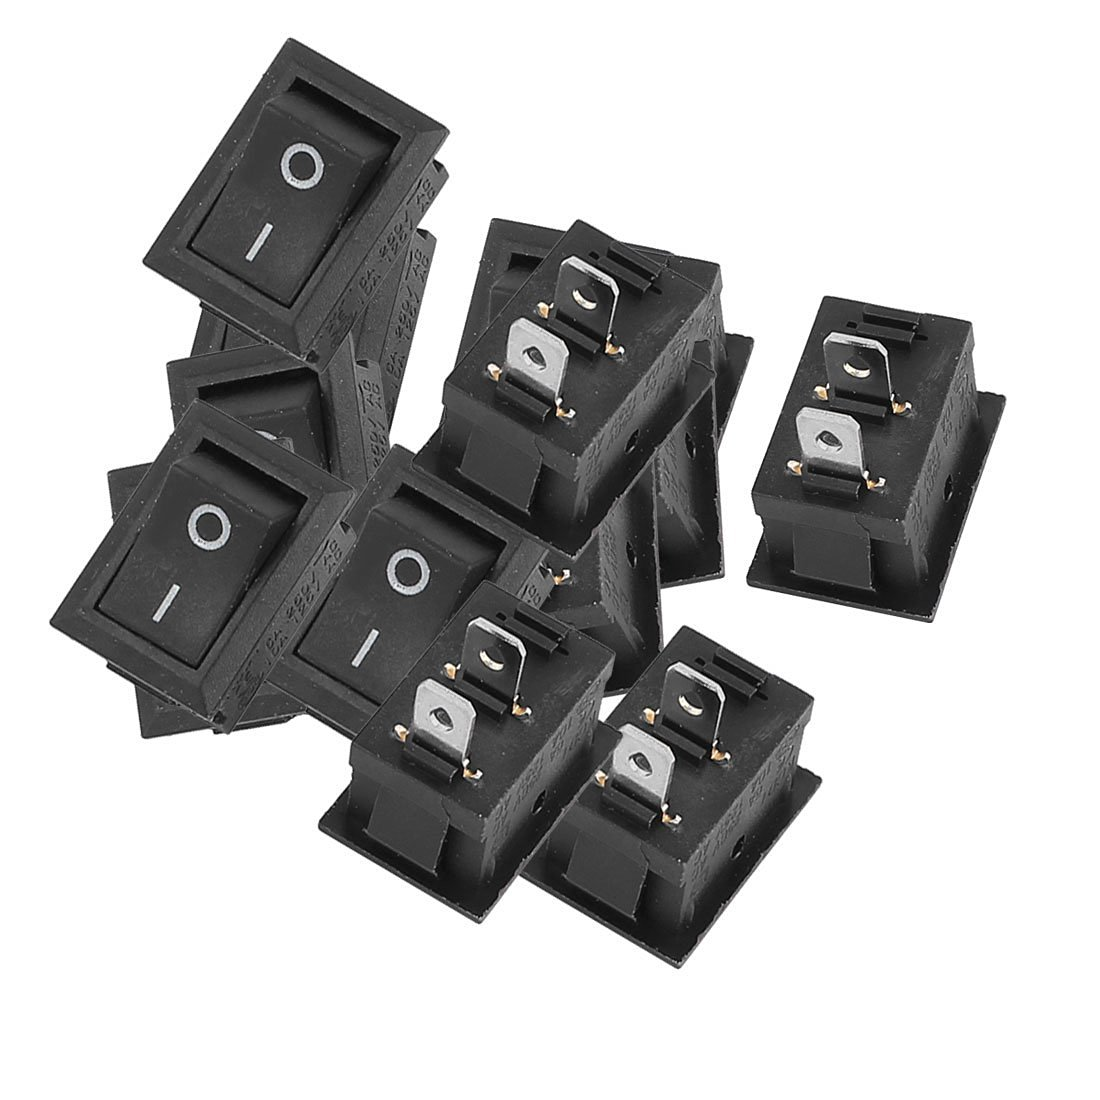 uxcell AC 6A/250V 10A/125V ON-OFF I/O SPST Boat Rocker Switch Black 15 Pcs